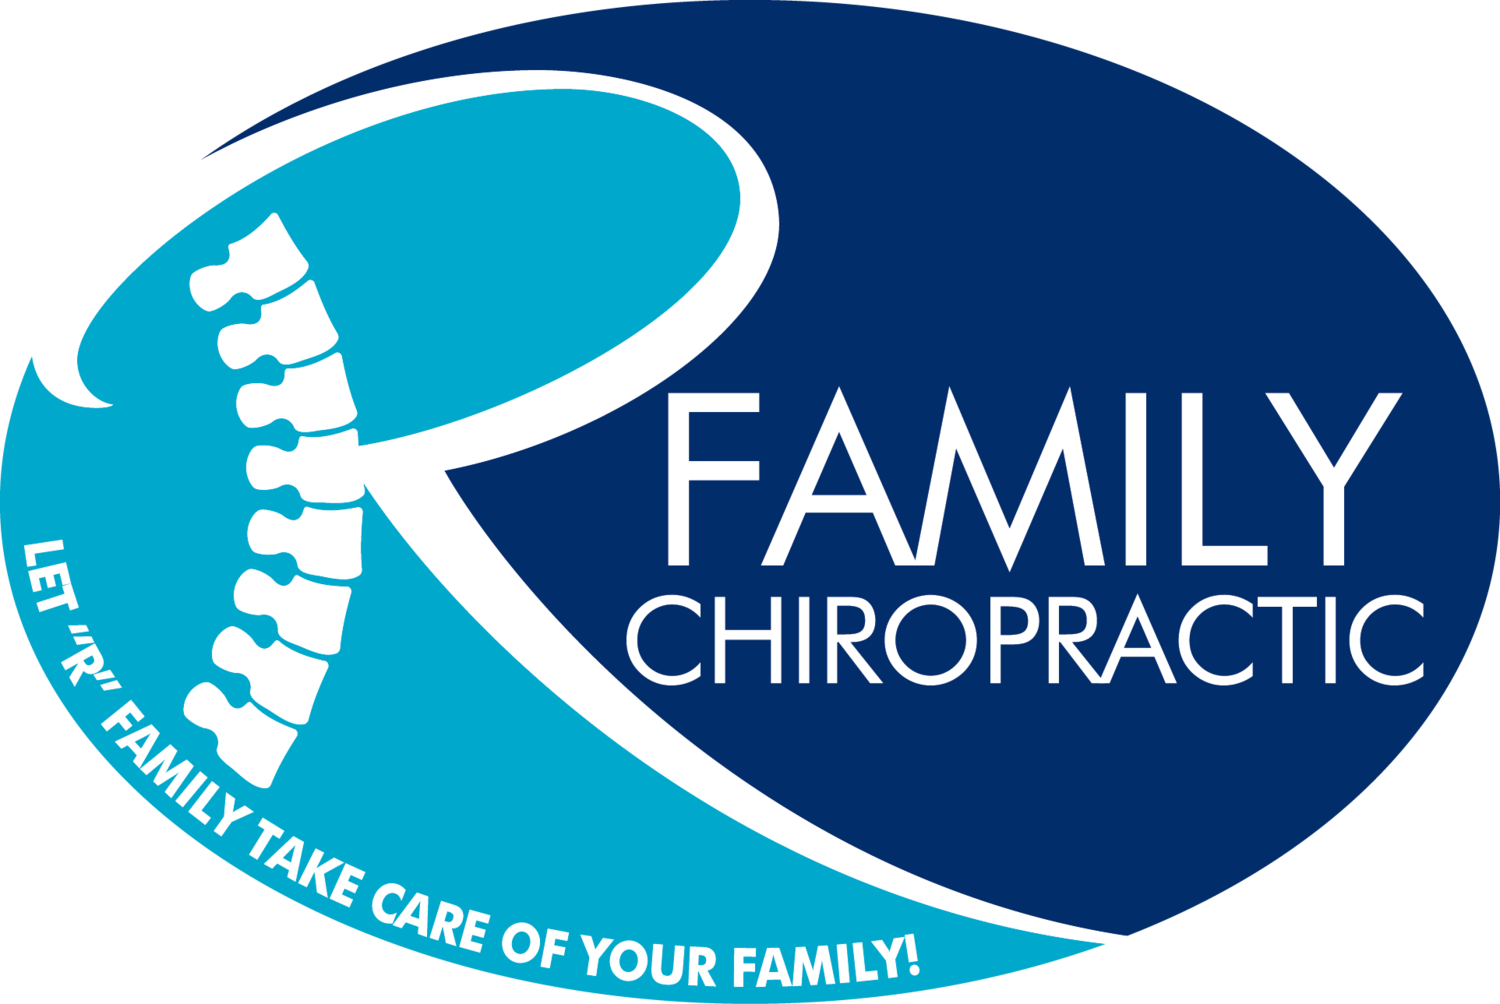 R Family Chiropractic Fort Worth, TX